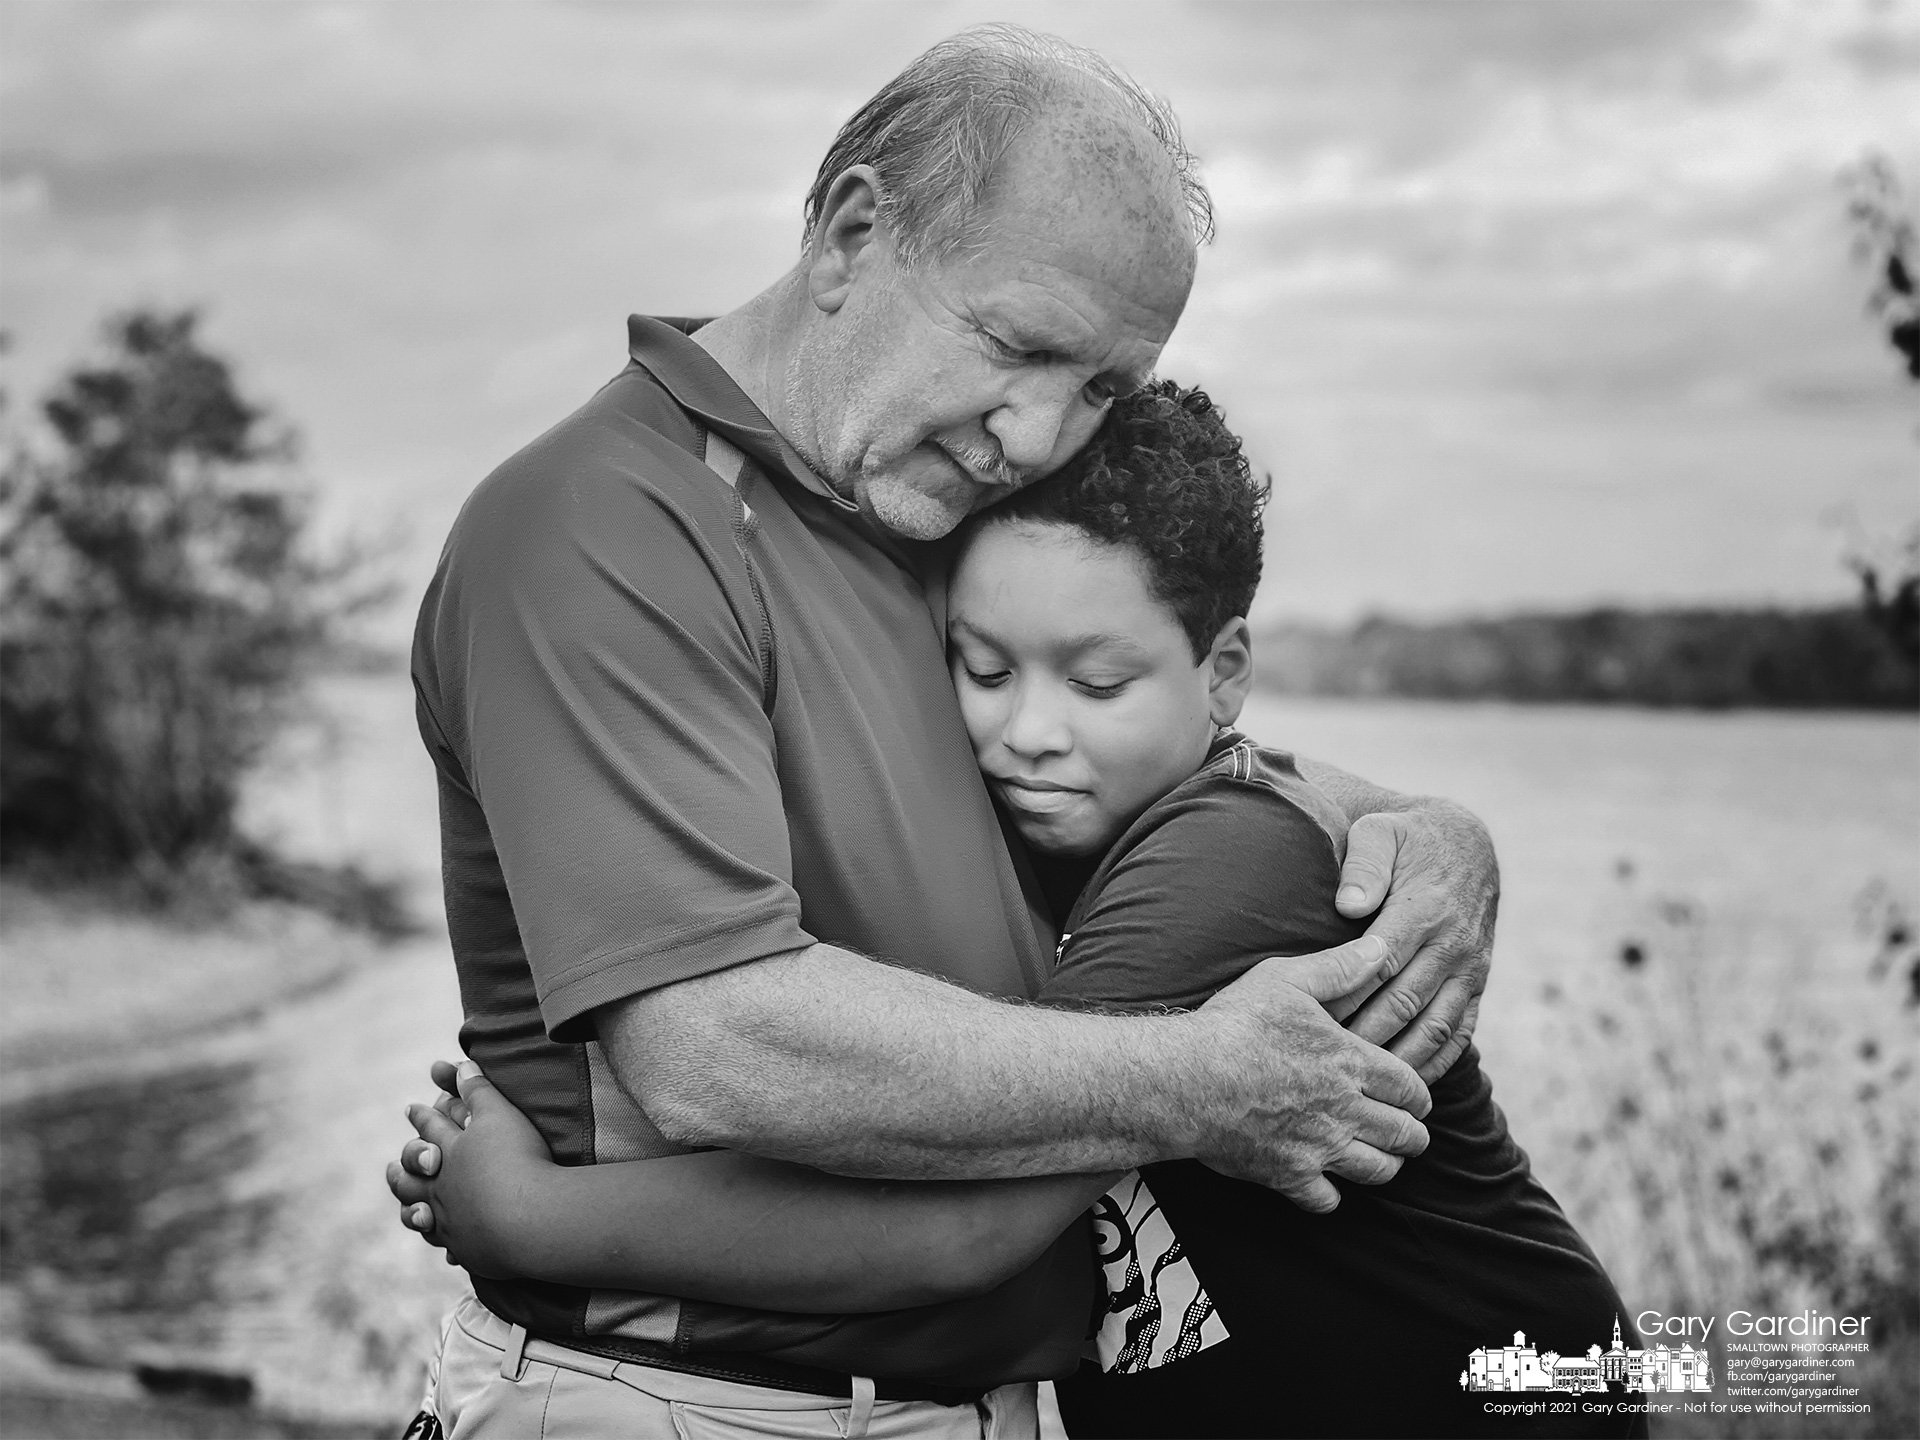 Grandfather and grandson embrace at the end of an afternoon enjoying themselves on the shores of Hoover Reservoir at Red Bank Park. My Final Photo for Oct. 15, 2021.